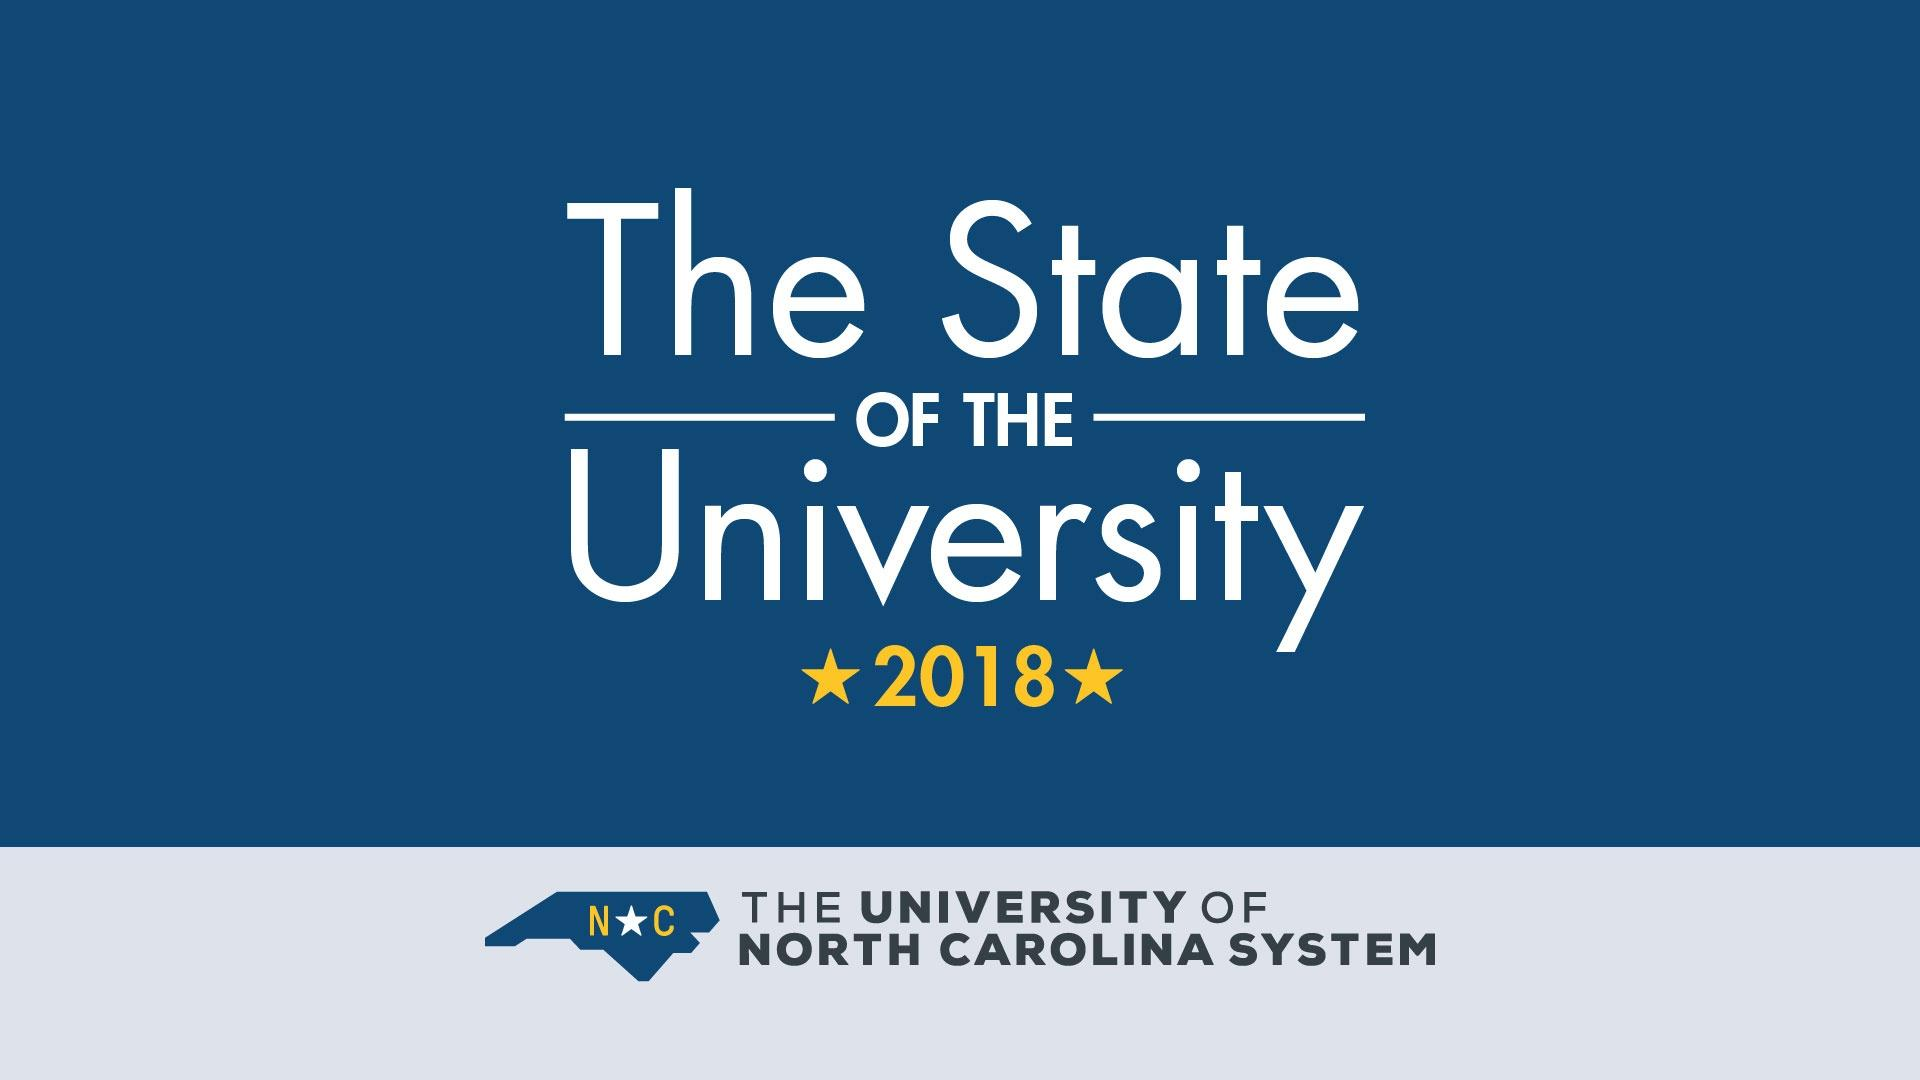 State of the University Address from Charlotte, NC